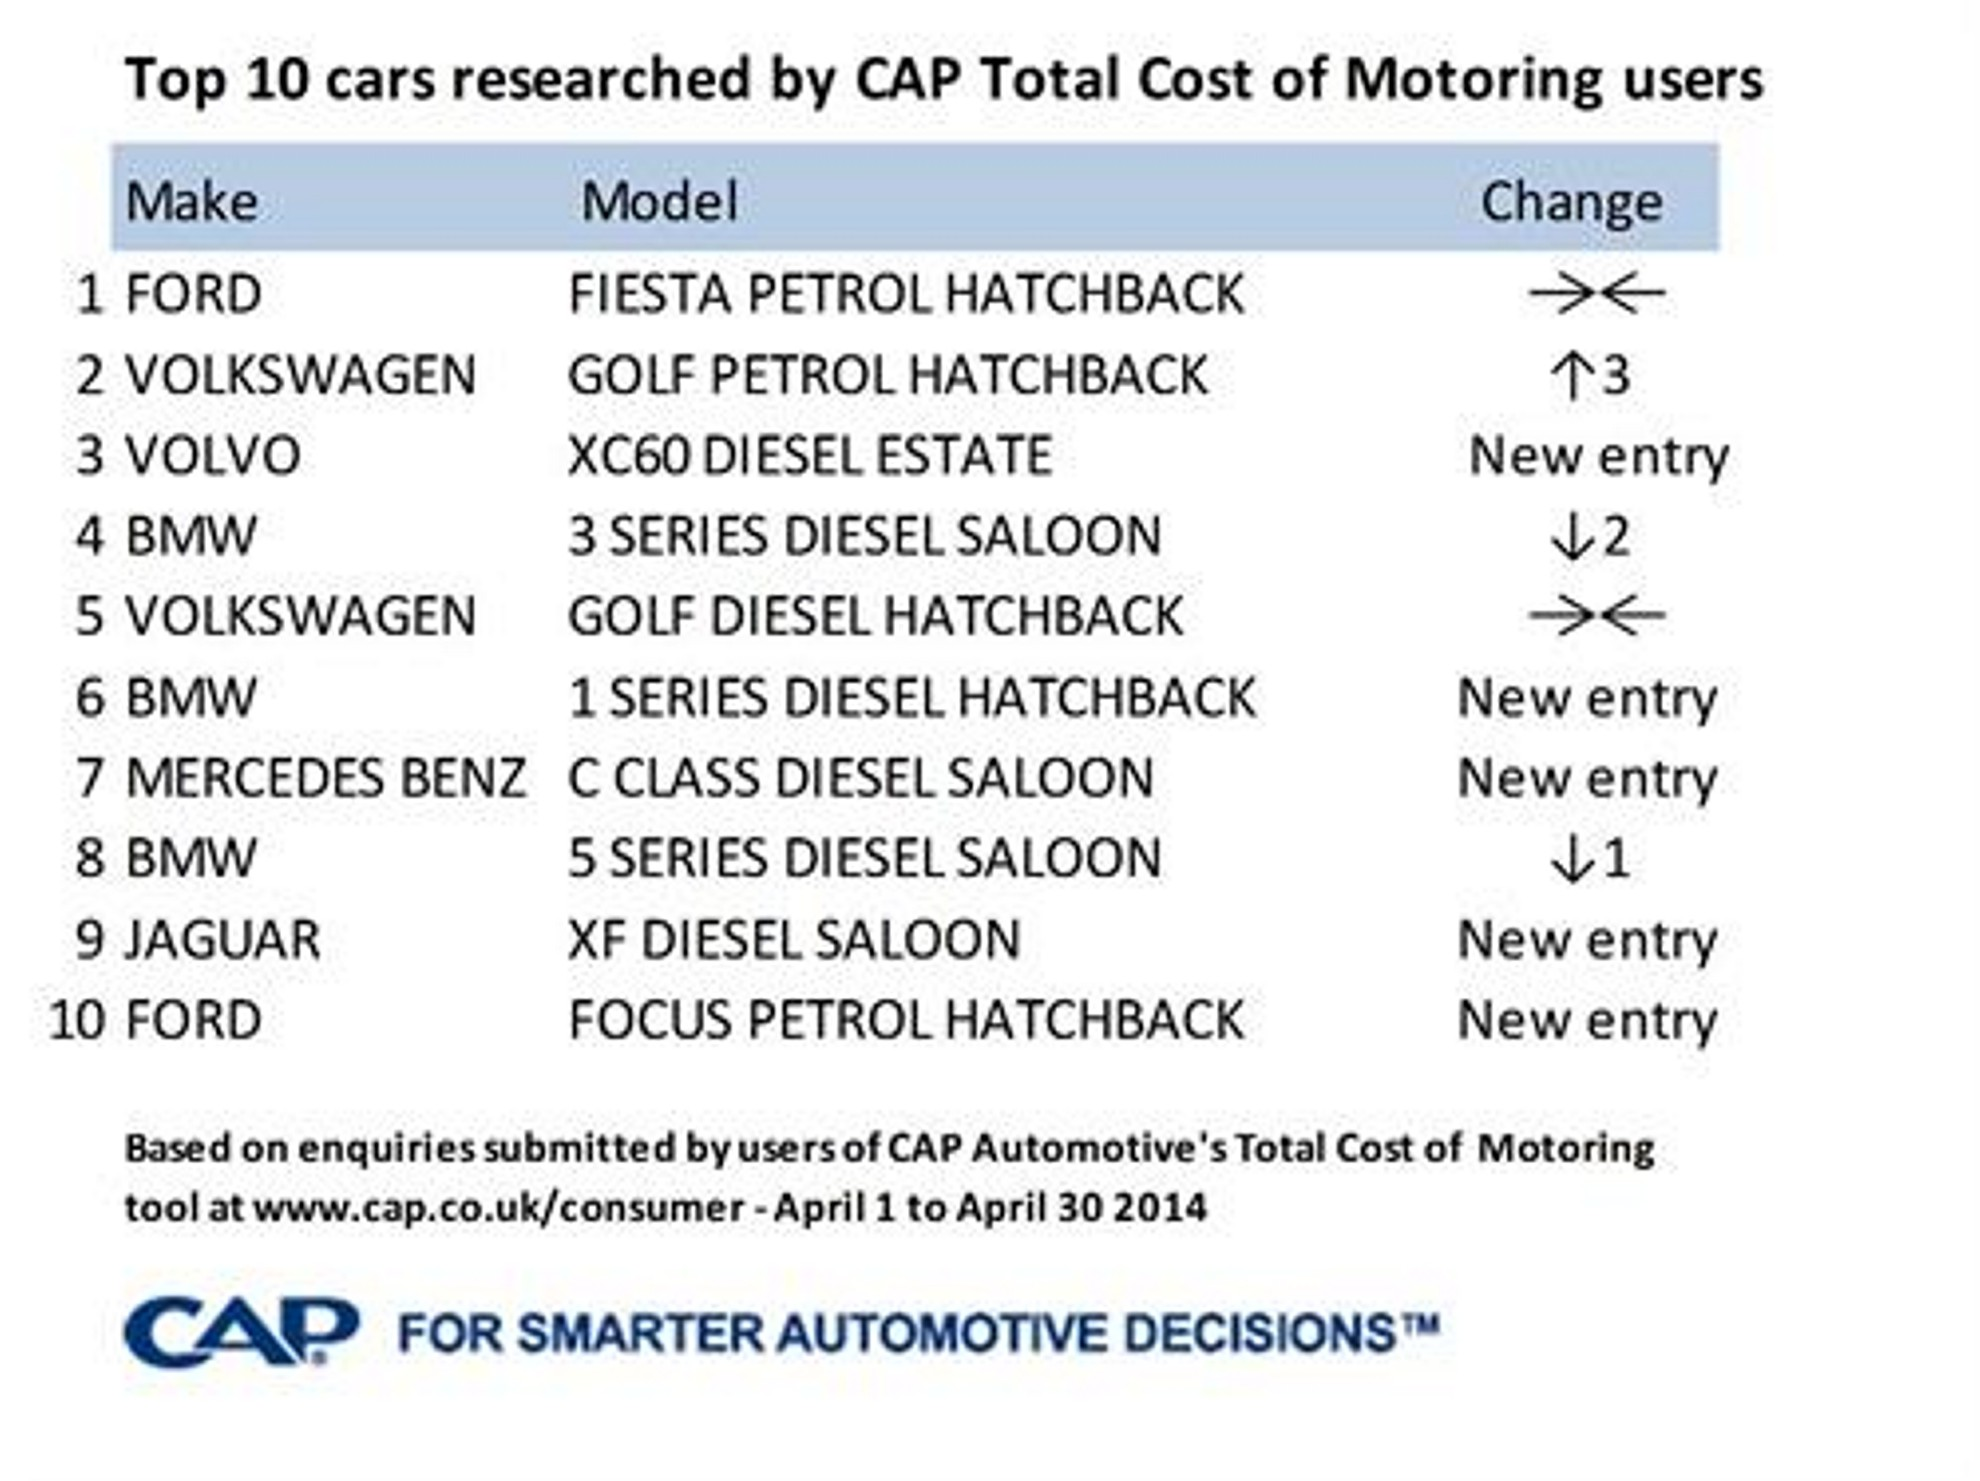 The top 10 cars researched in April 2014 by CAP Total Cost of Motoring